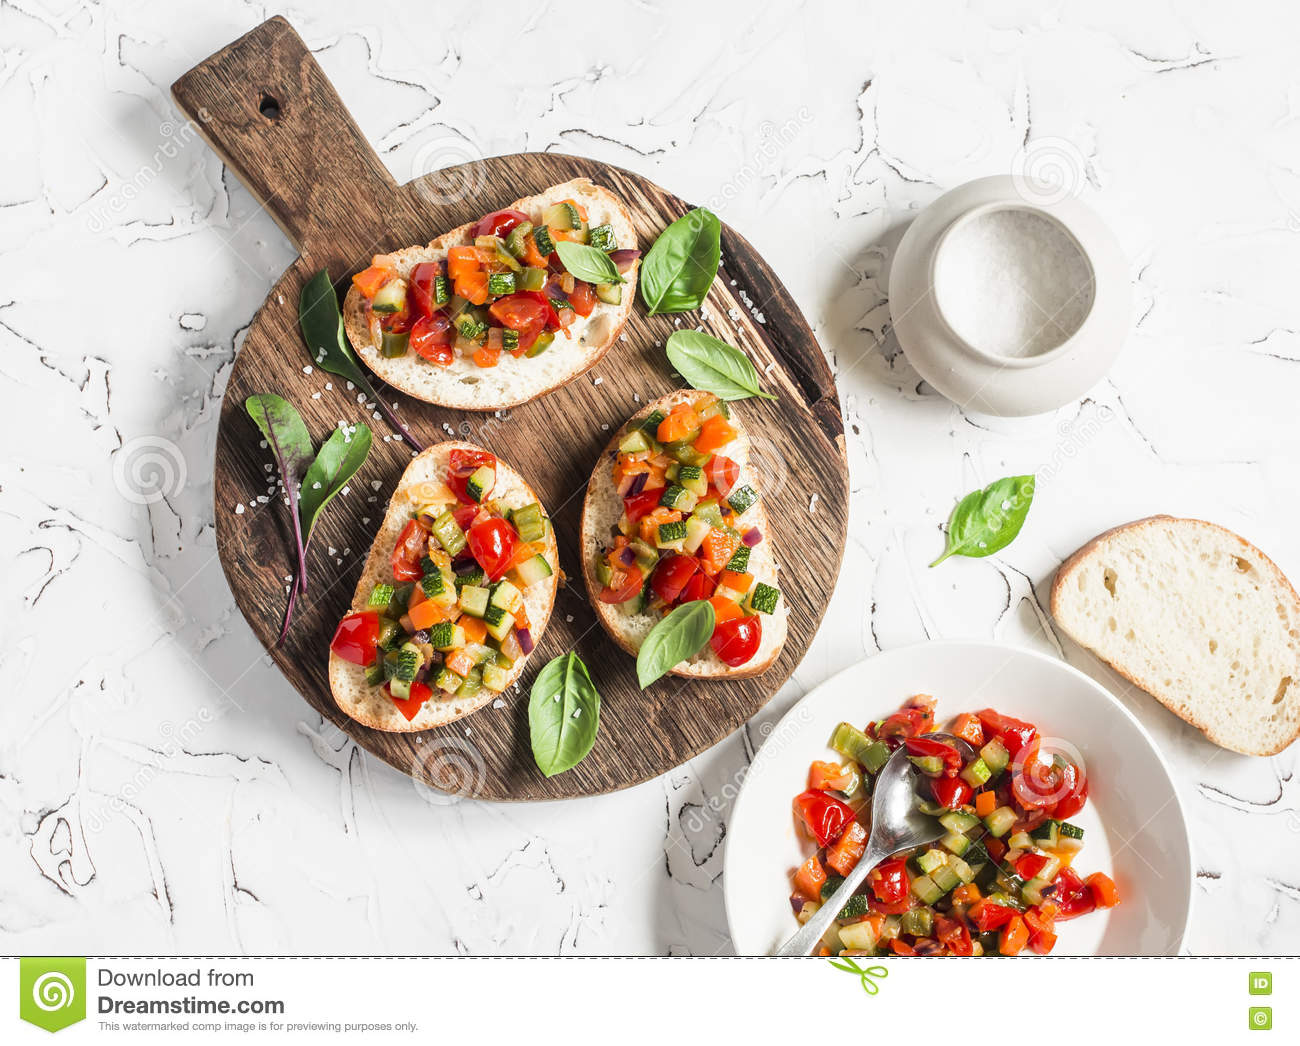 Sandwiches with quick ratatouille on rustic cutting board on a light background. Delicious healthy vegetarian food